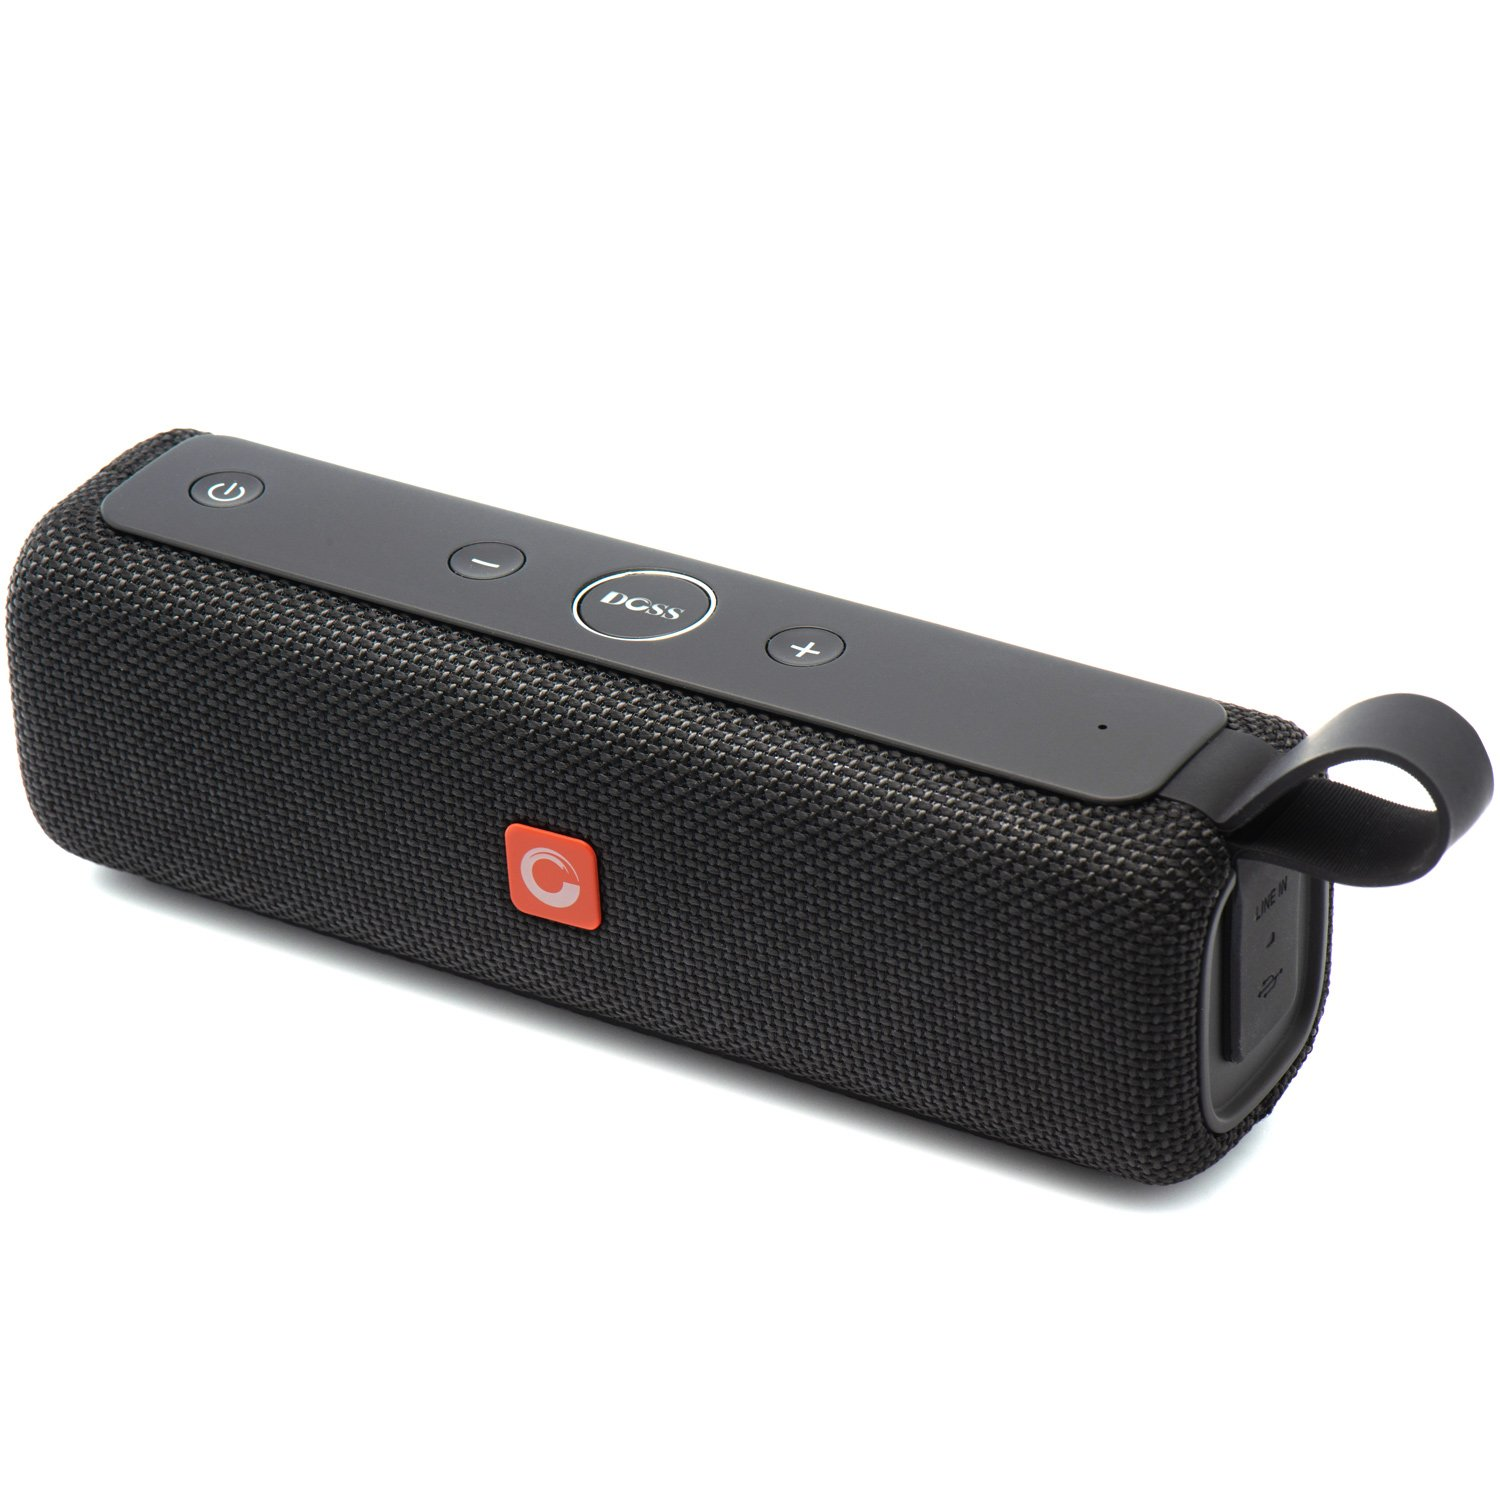 DOSS E-go II Portable Bluetooth Speakers with Great Sound and Extra Bass, IPX6 Waterproof, Built-in Mic, 12W Drivers, 12-Hour Playtime, Wireless Speakers for Phone, Computers, TV and More